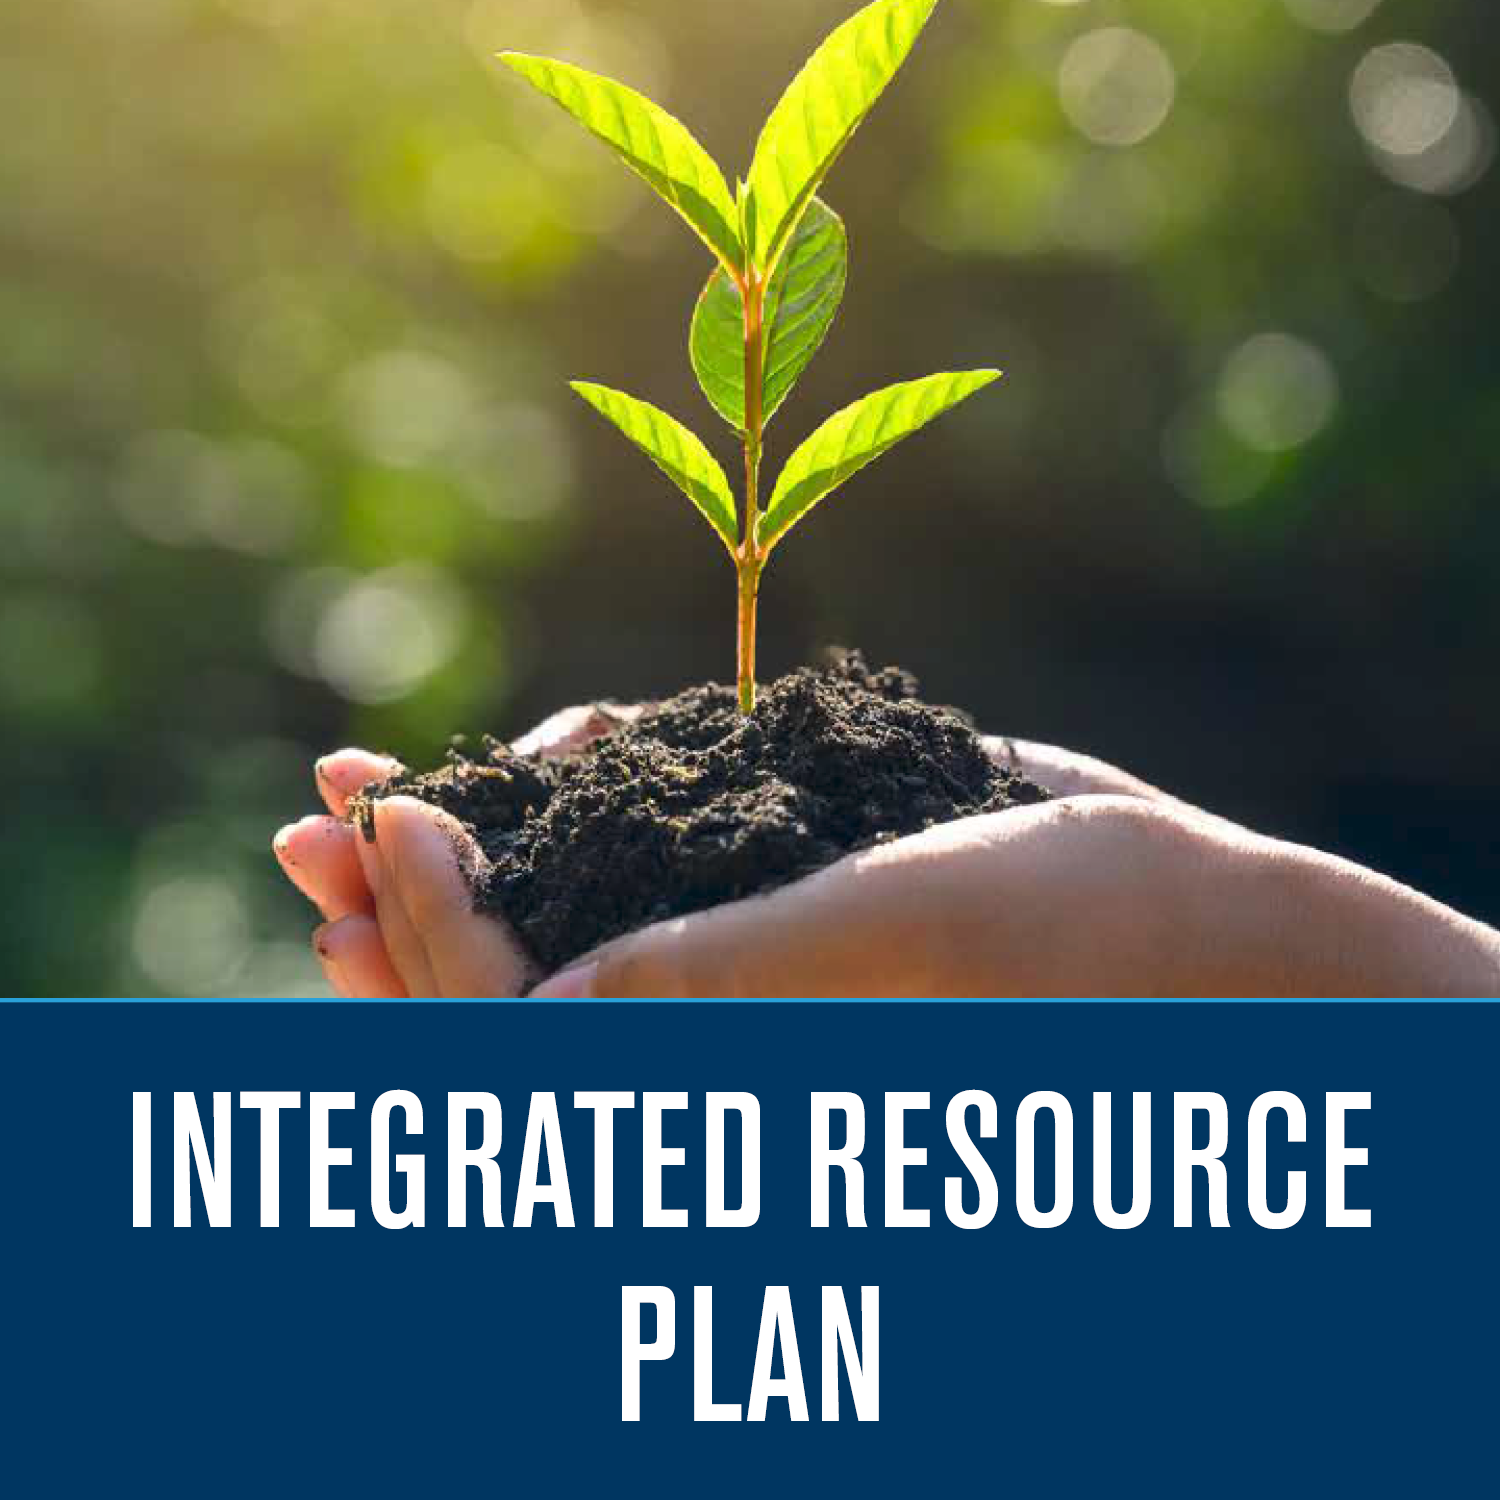 Integrated Resource Plan